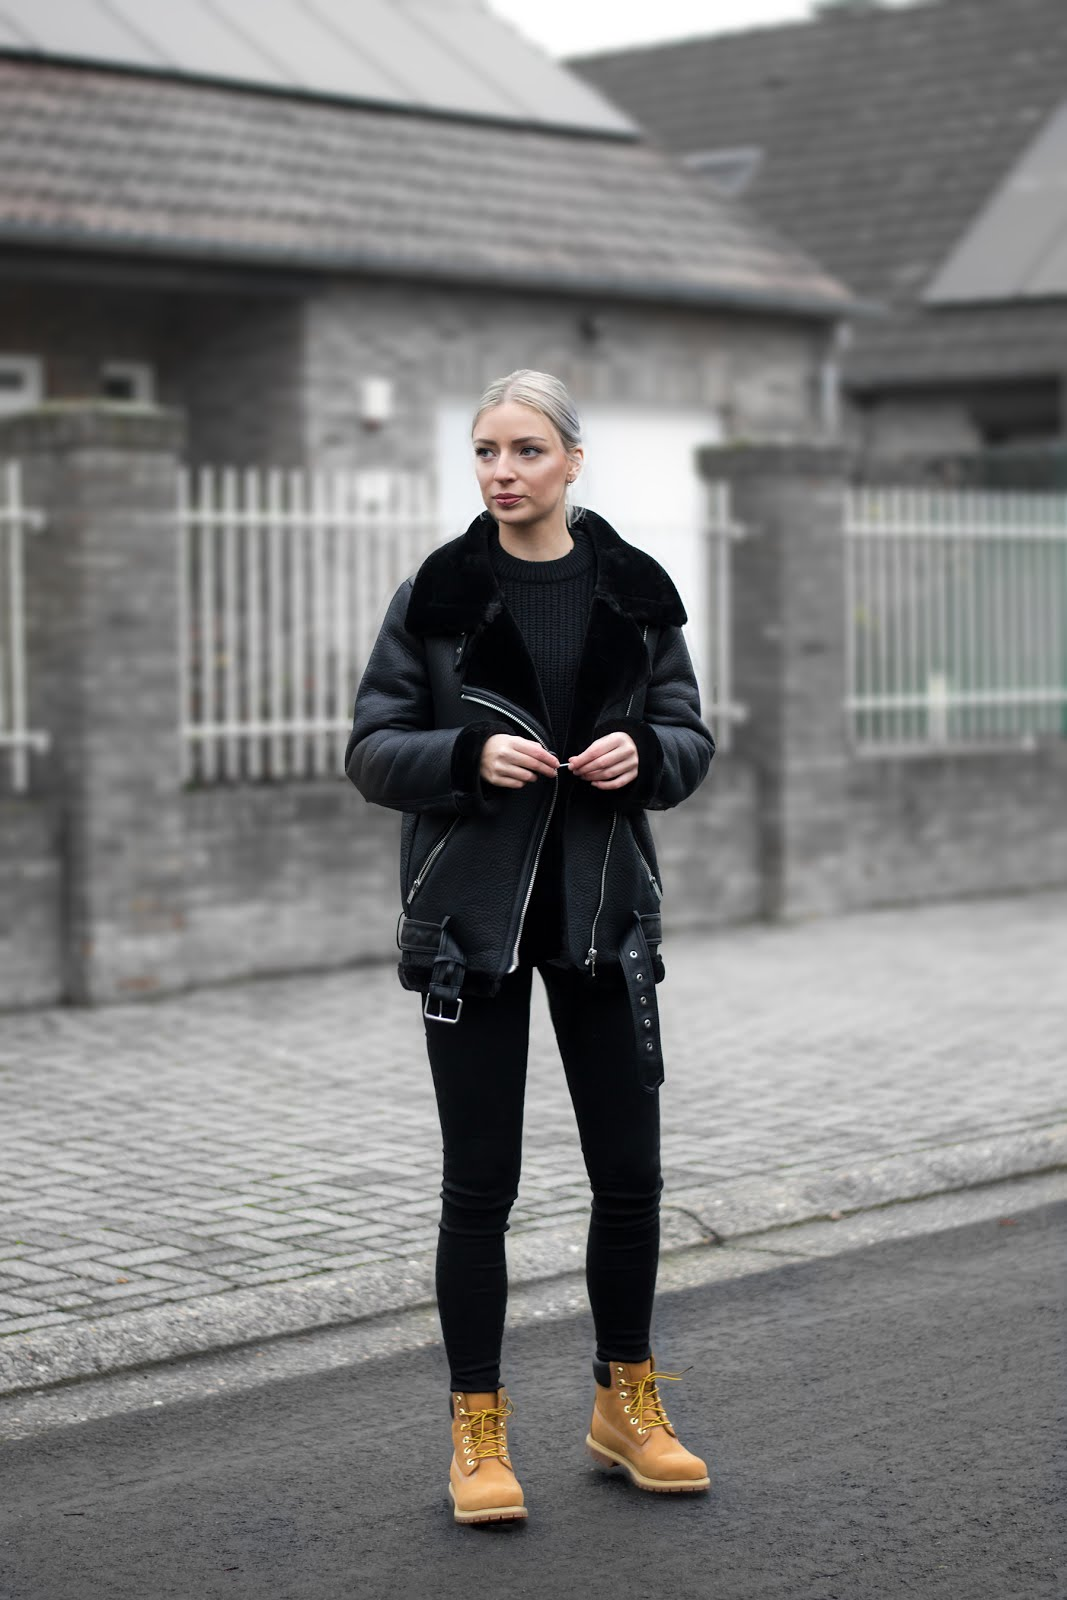 Timberland boots, wheat, premium, outfit, minimal, onlybrands, etrias, women, street style, all black, shearling coat, zara, all saints jeans, amy, weekday huge cropped knit